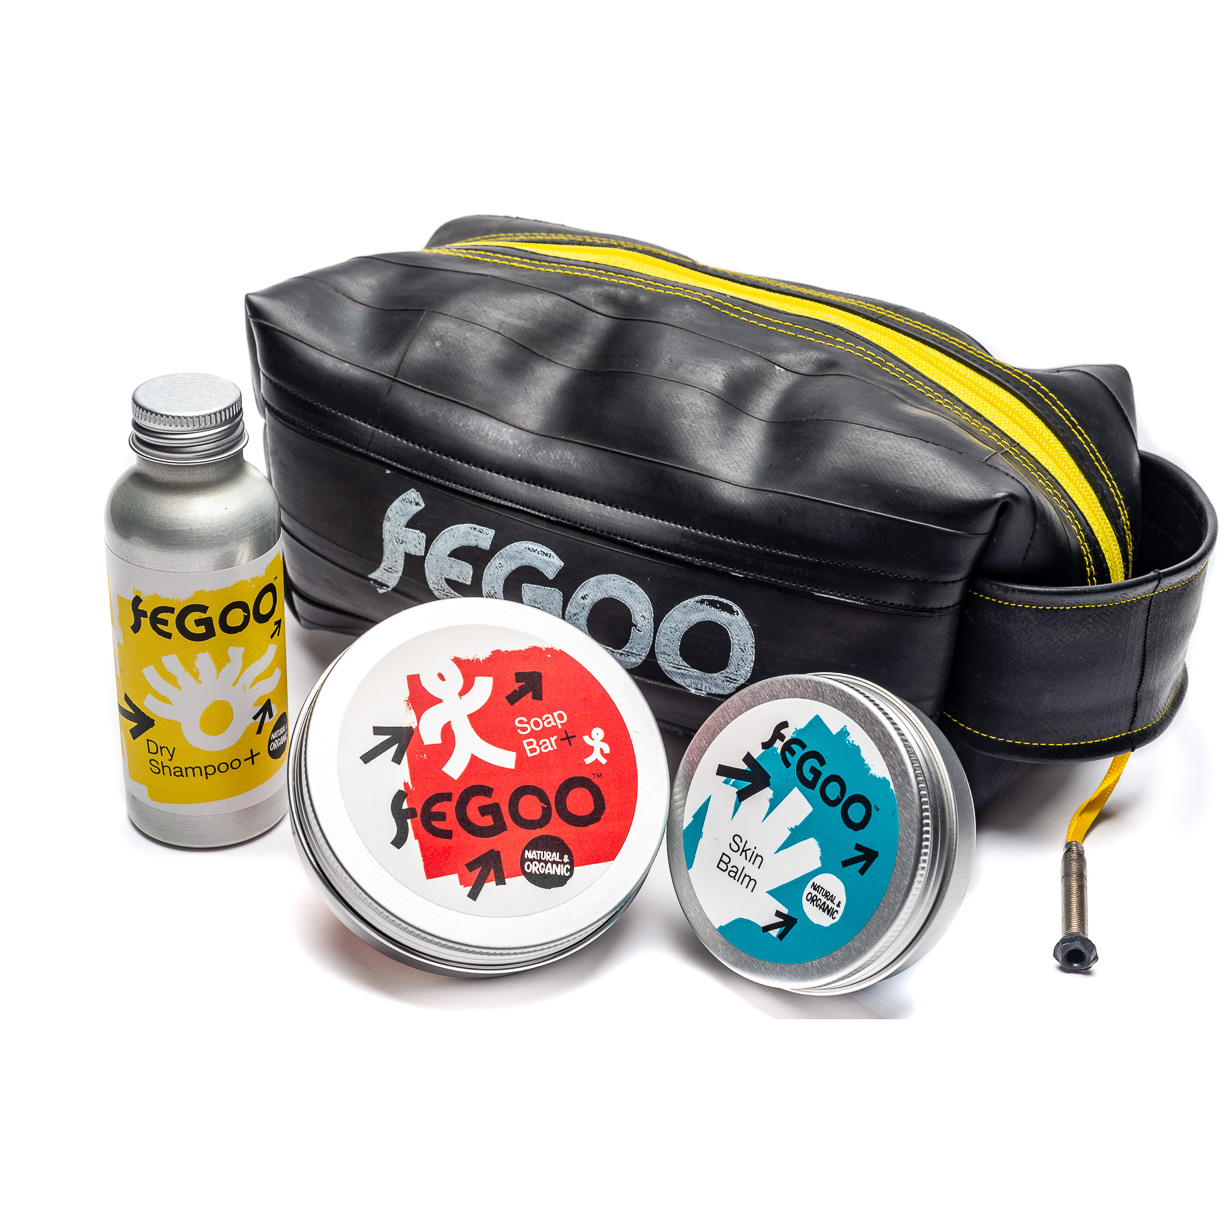 Gift Set for Backpacking